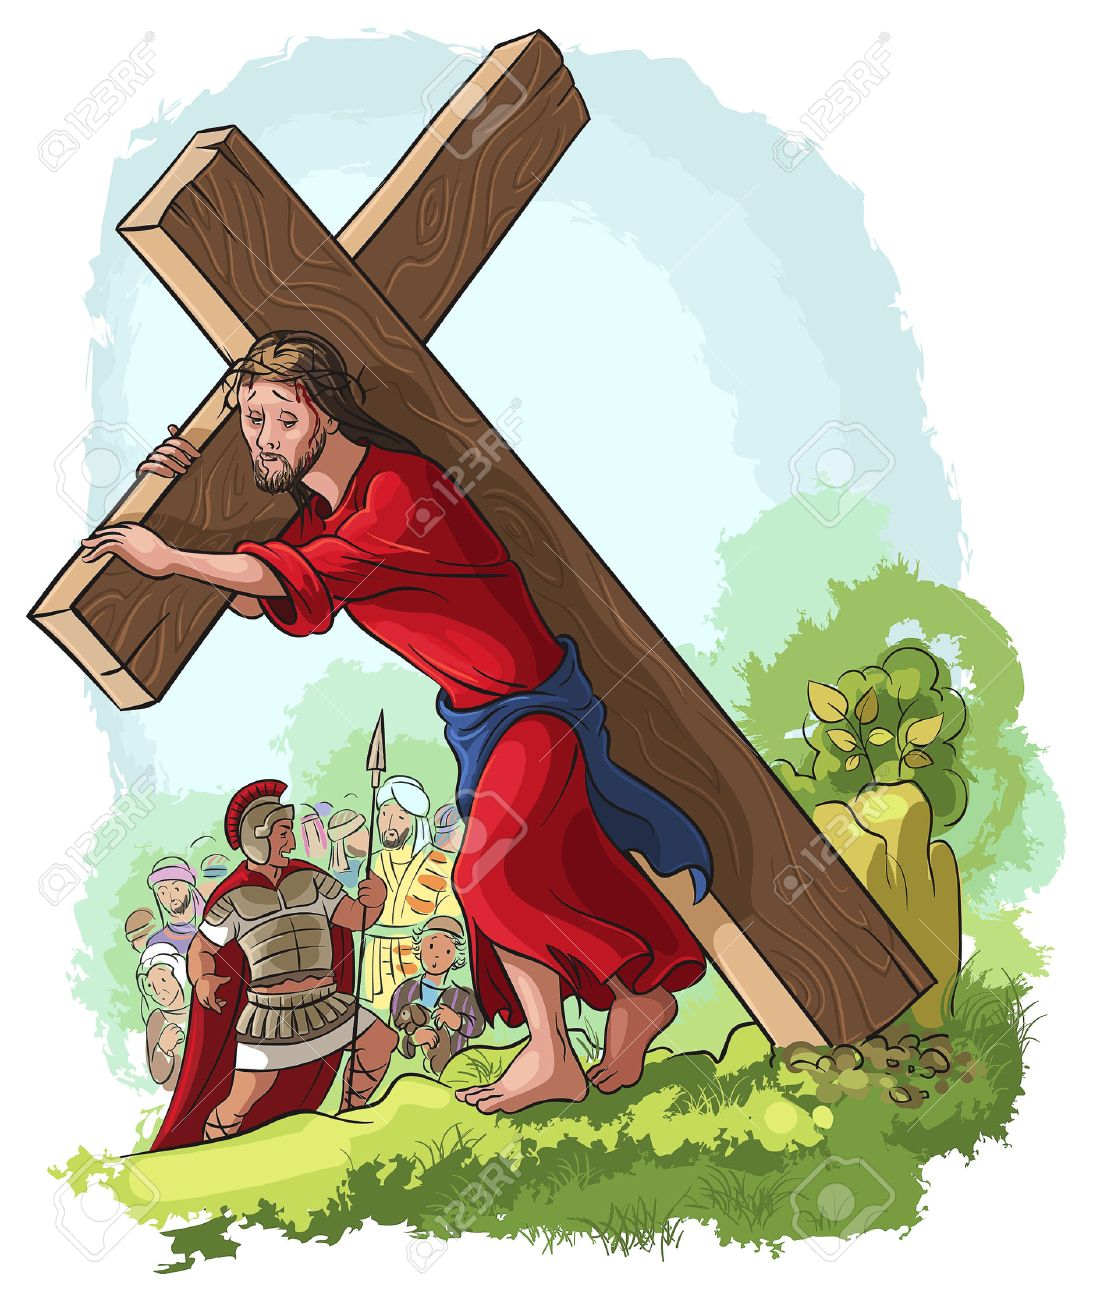 illustration of jesus christ carrying cross royalty free cliparts